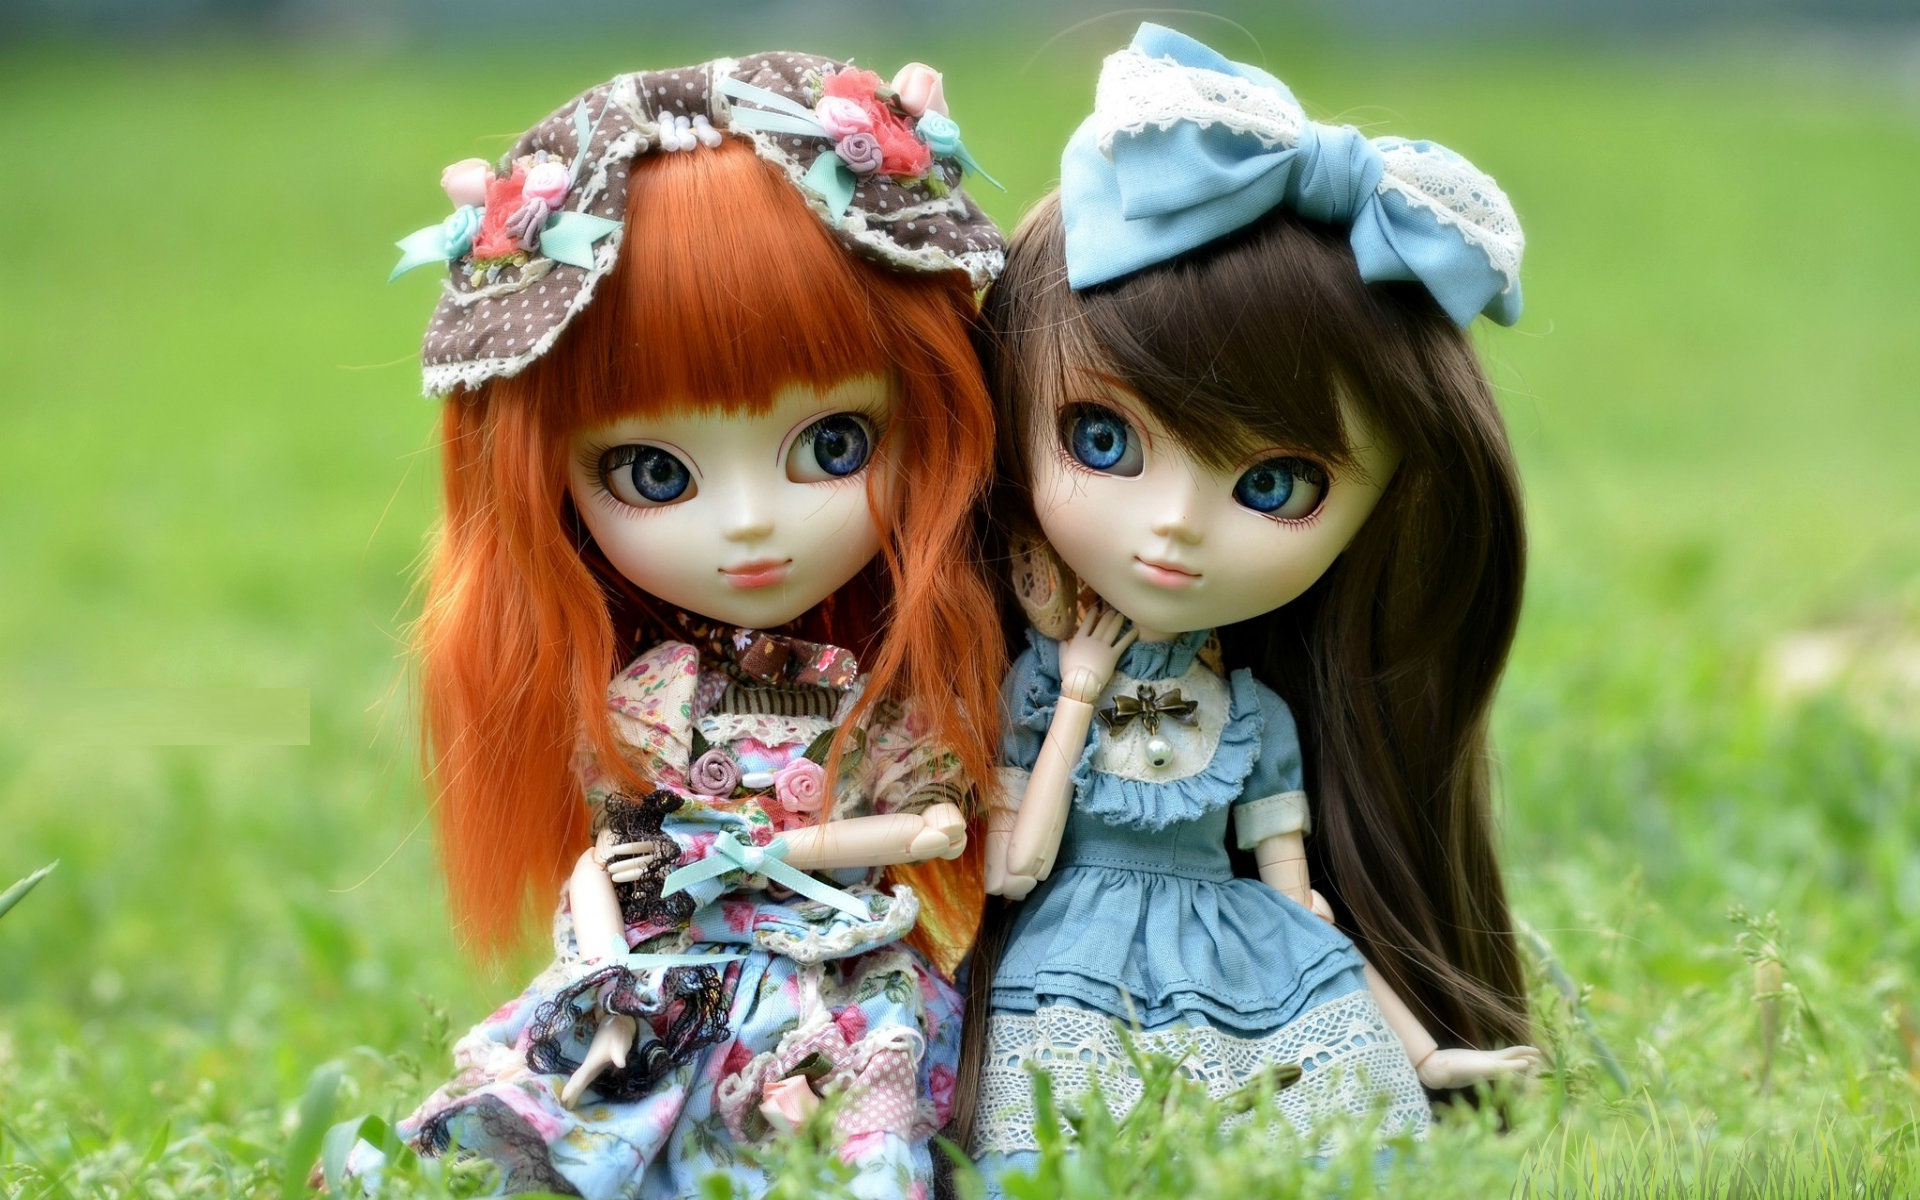 New Wallpapers Of Cute Dolls